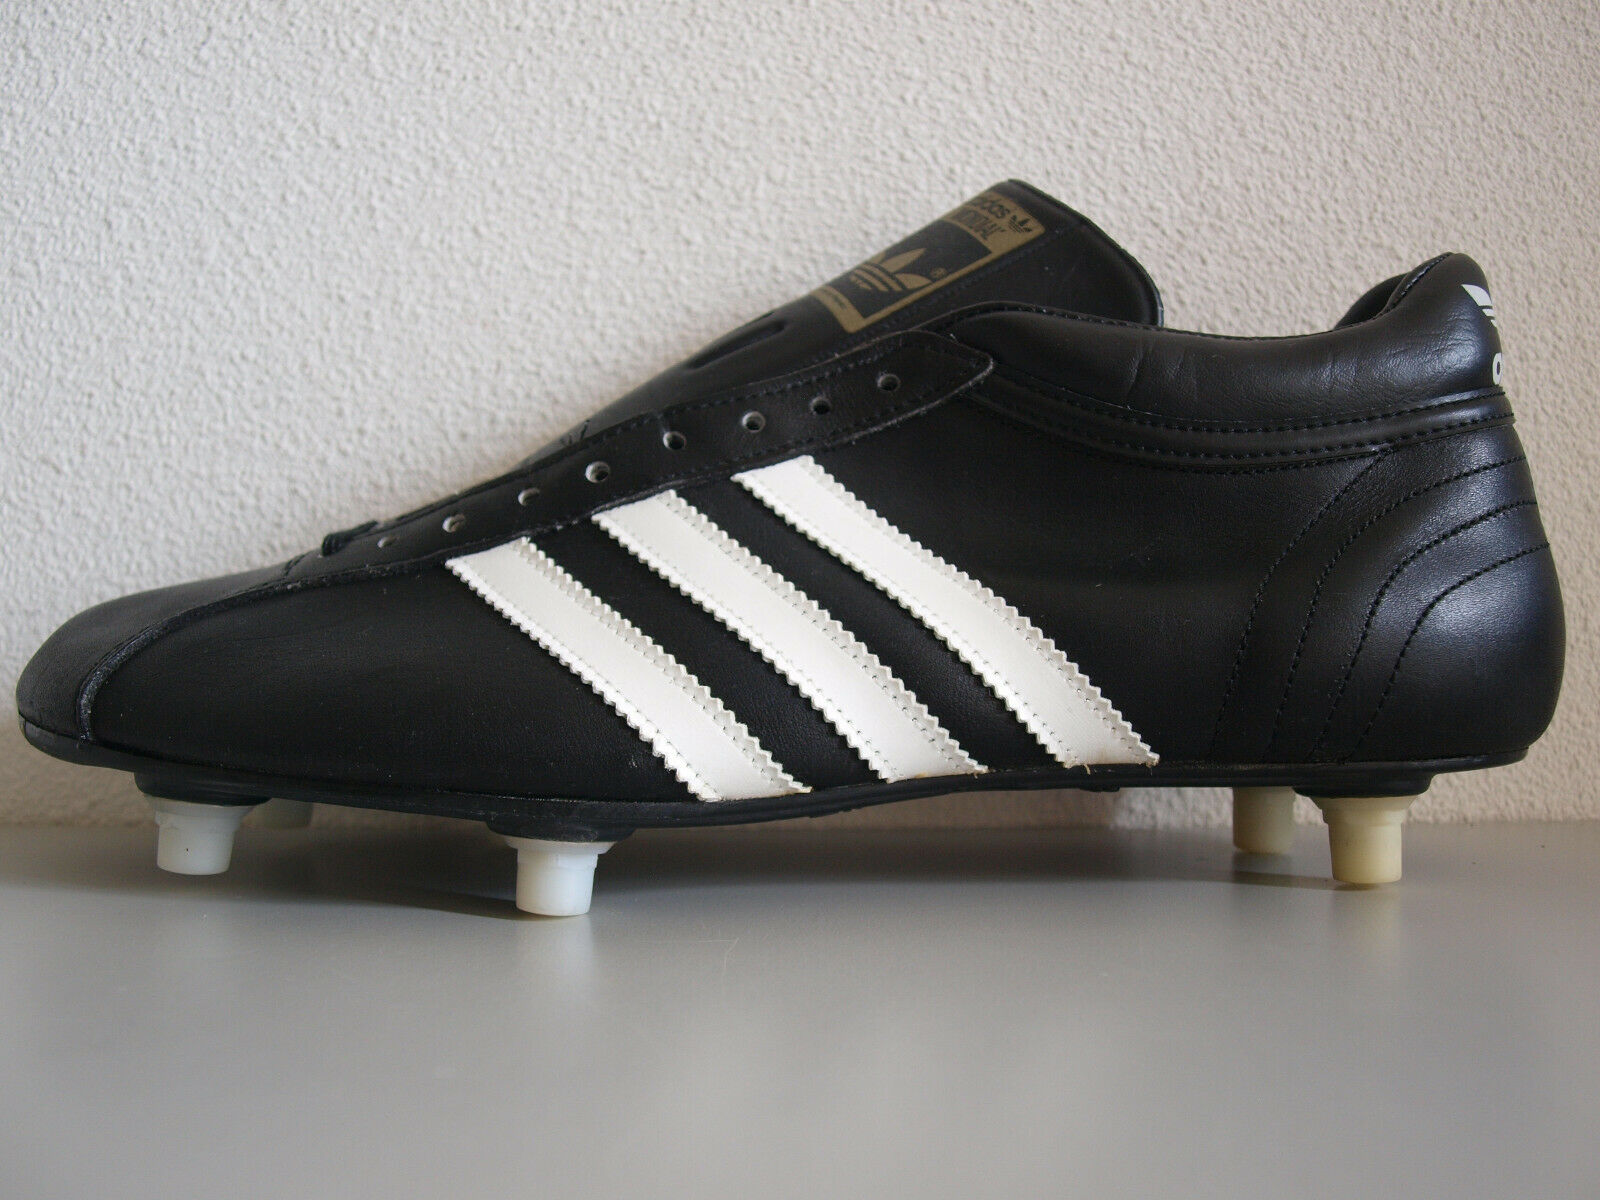 Adidas Mondial Cleats US 11 Vintage Seventies Made In France Torsion OG ZX